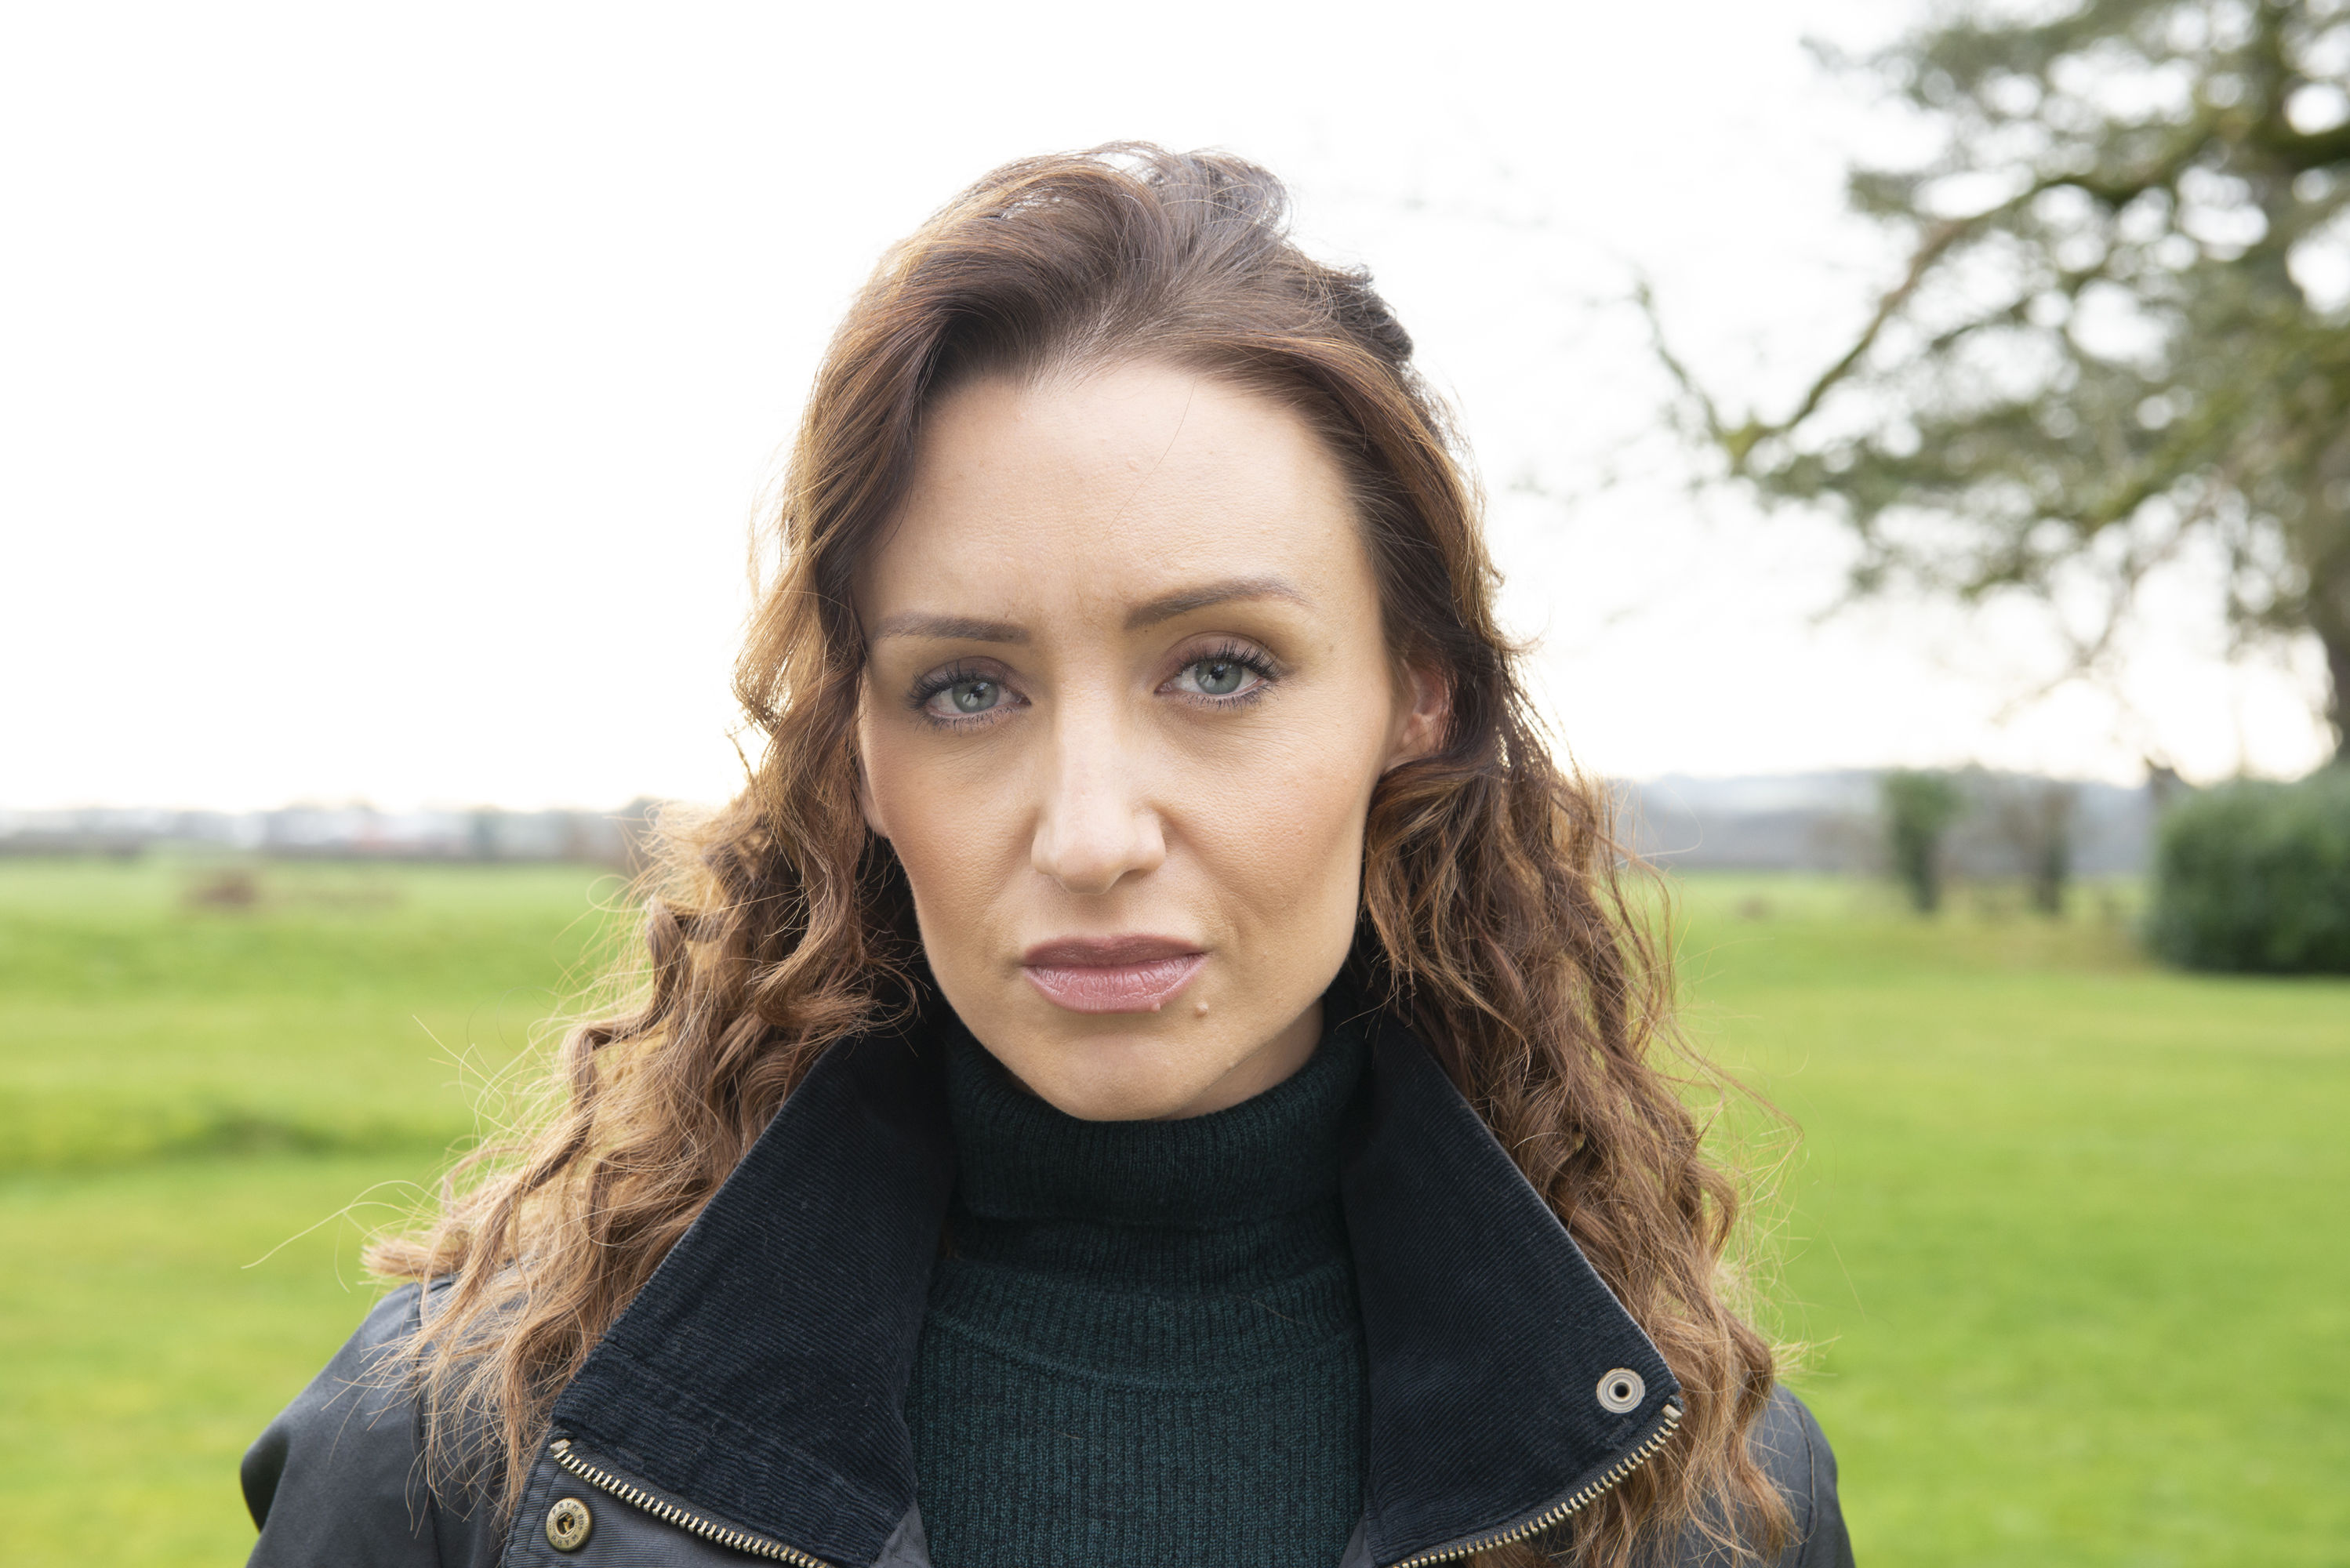 Fans applaud Catherine Tyldesley's Welsh accent in new drama 15 Days